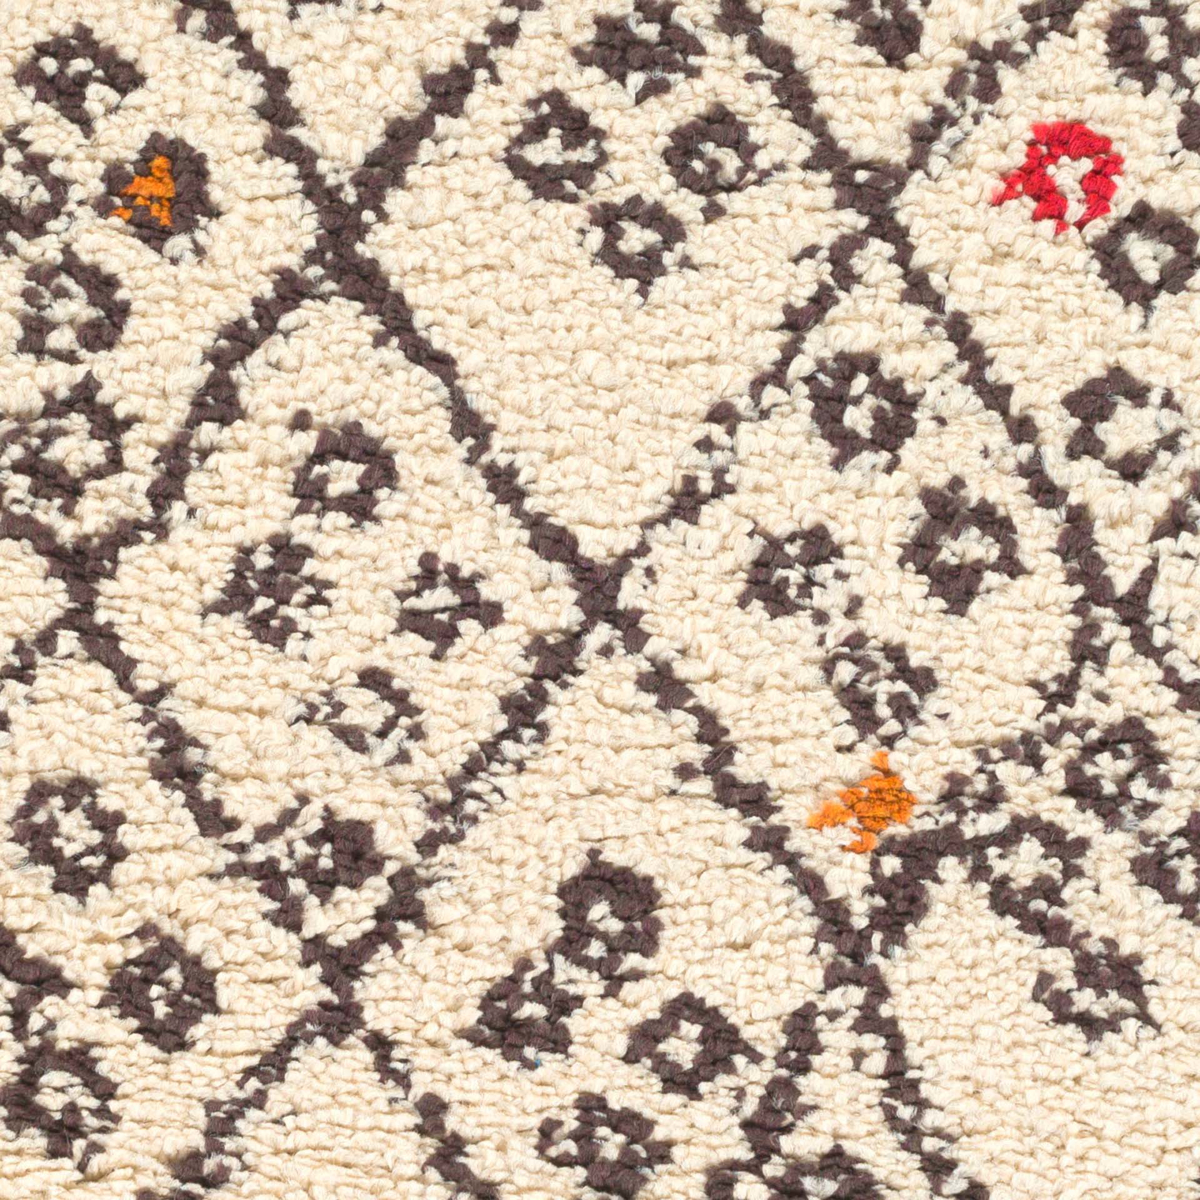 Handmade Surya Wilder Collection rug comes in khaki base with black diamond block pattern & speckled spots perfect for your living room floor decor.